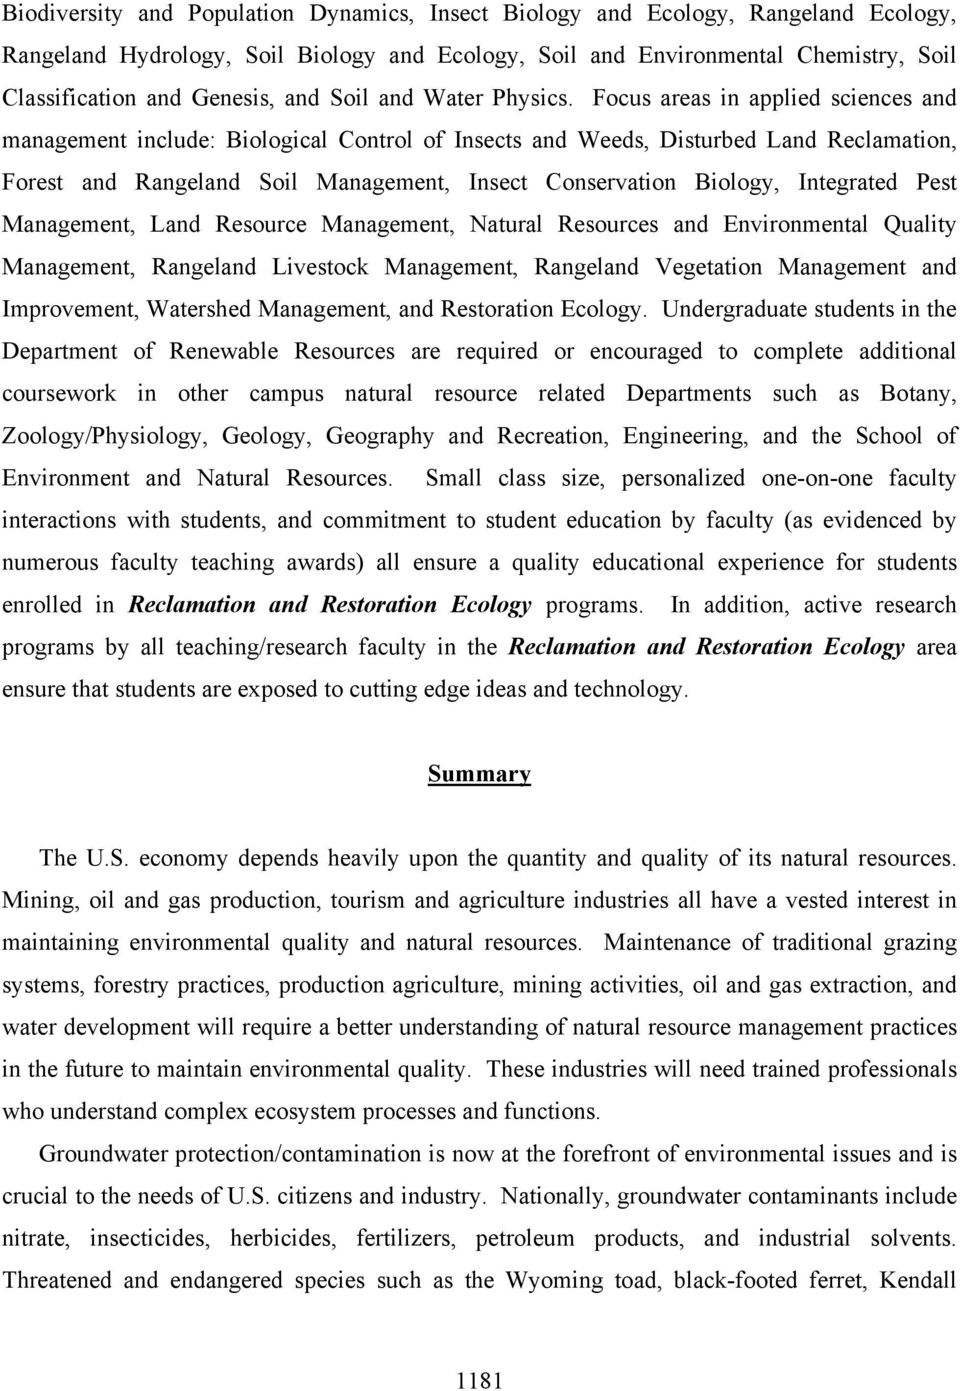 Focus areas in applied sciences and management include: Biological Control of Insects and Weeds, Disturbed Land Reclamation, Forest and Rangeland Soil Management, Insect Conservation Biology,